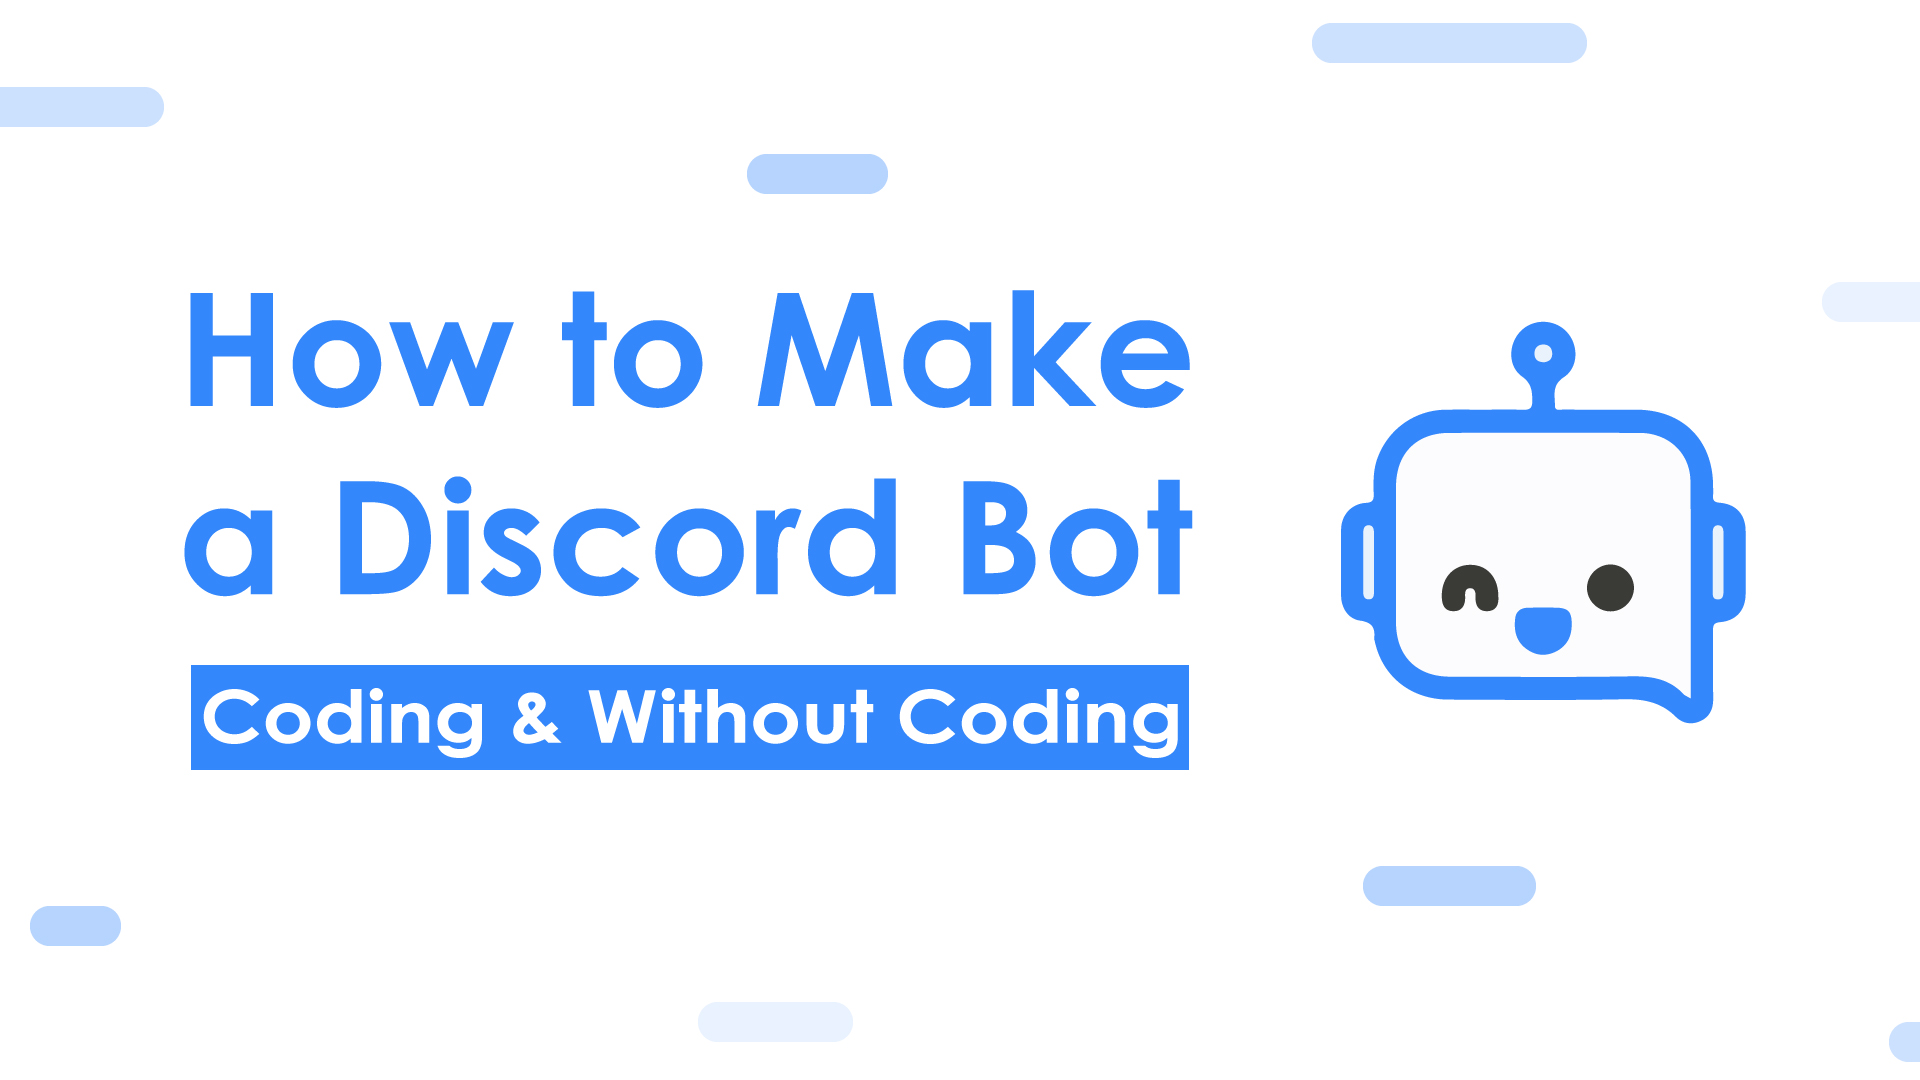 how-to-make-a-discord-bot-with-coding-and-without-coding